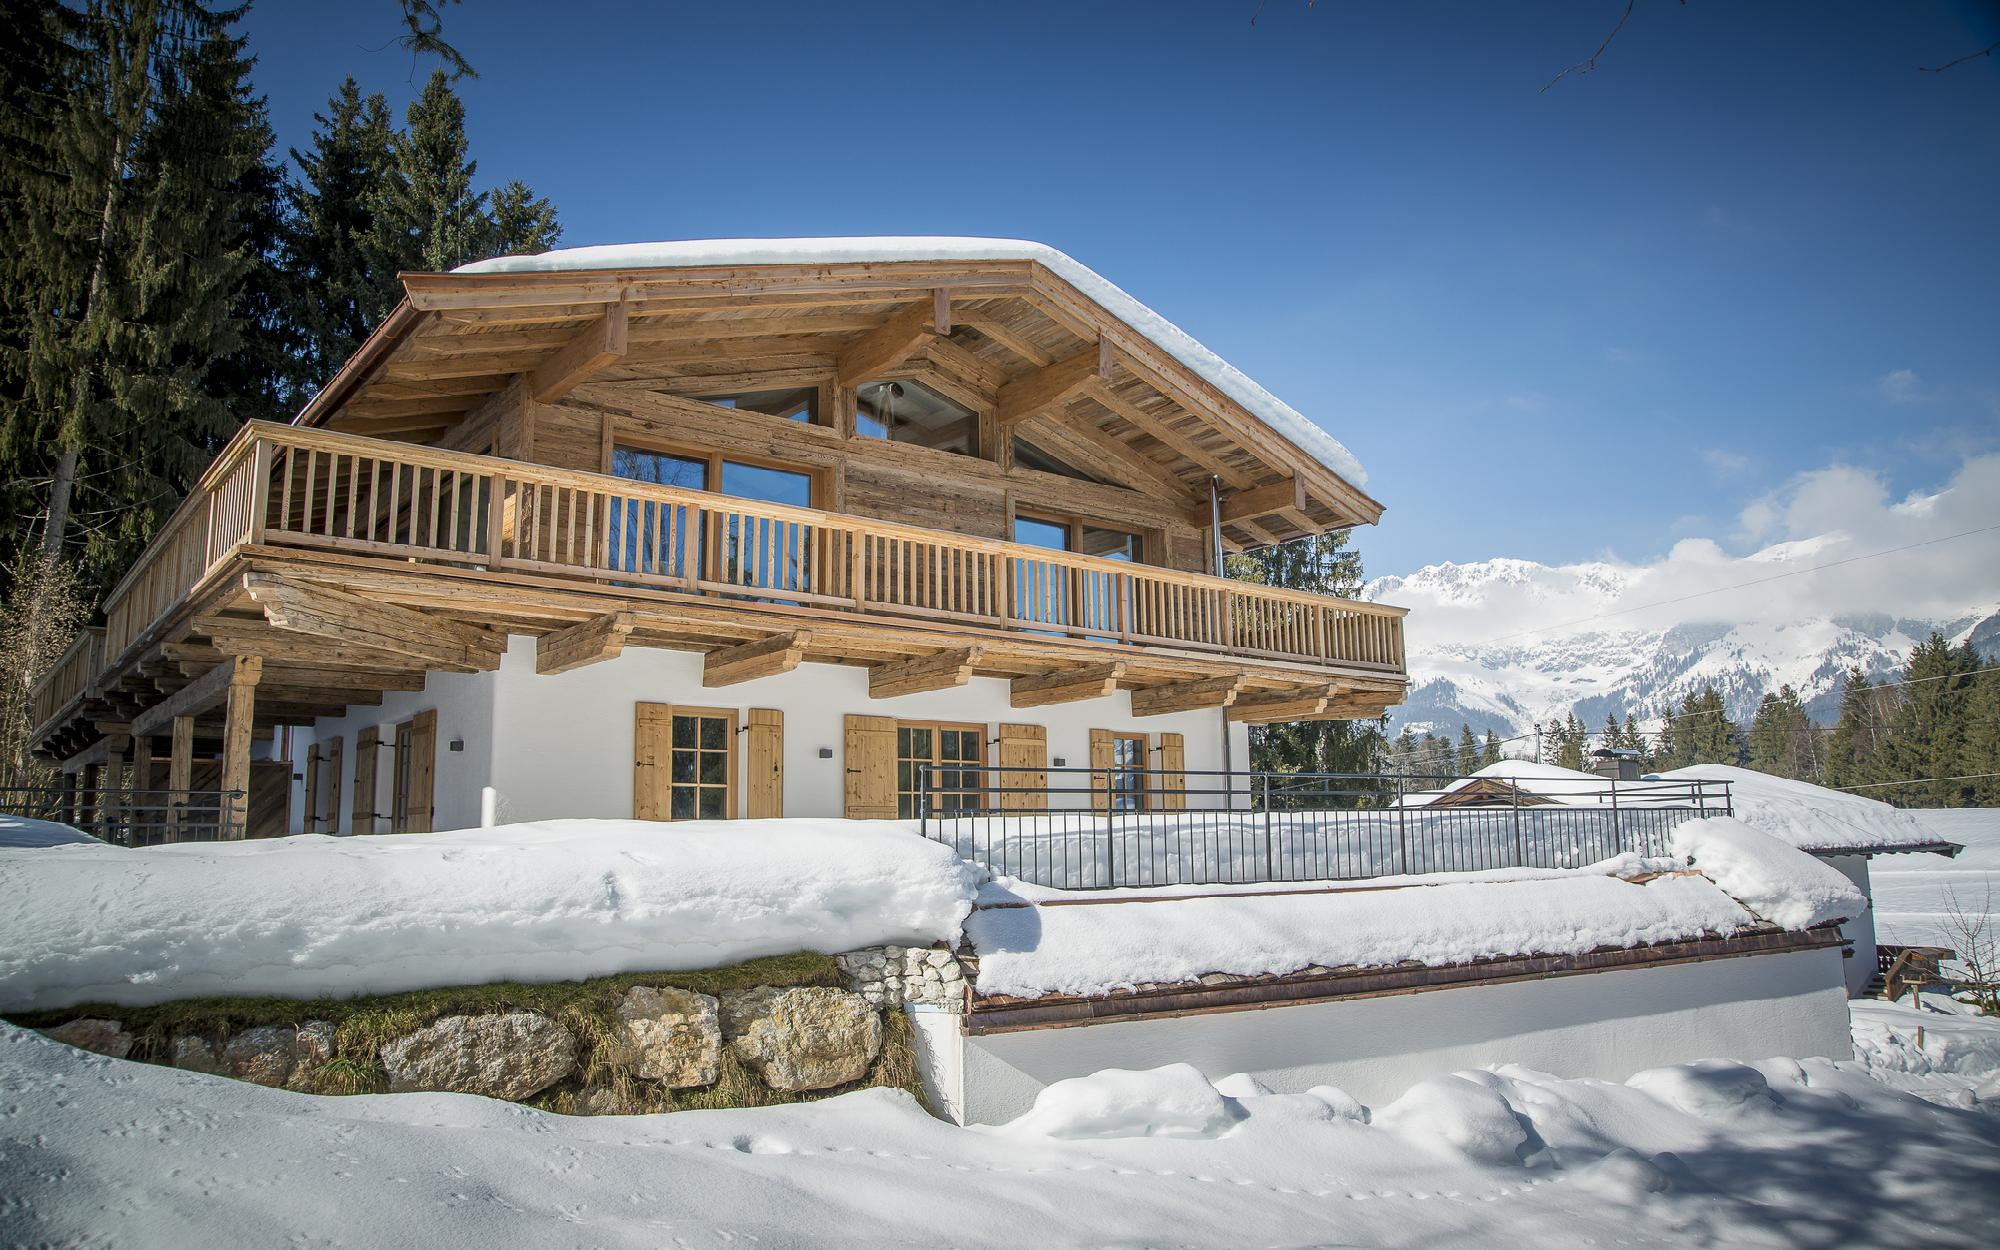 Newly built semi-detached house in Ellmau for Sale - Tirol - Austria